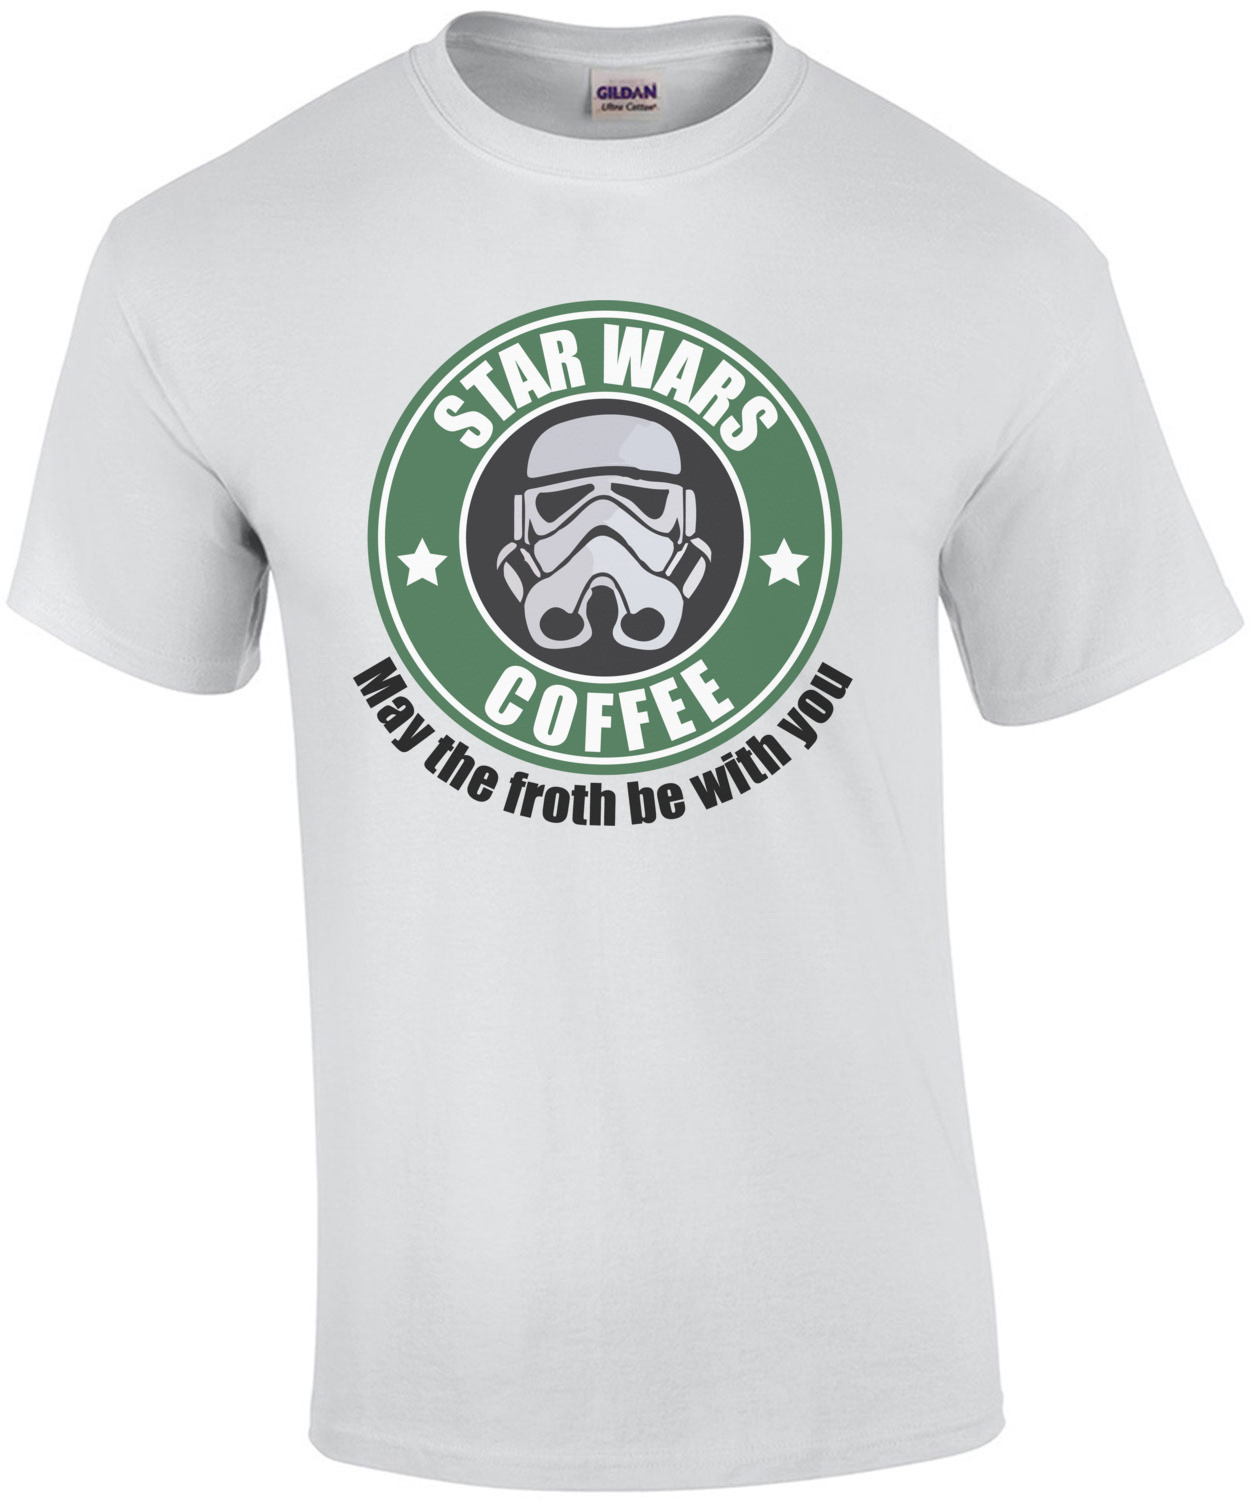 Star Wars Coffee - May the froth be with you Star Wars T-Shirt